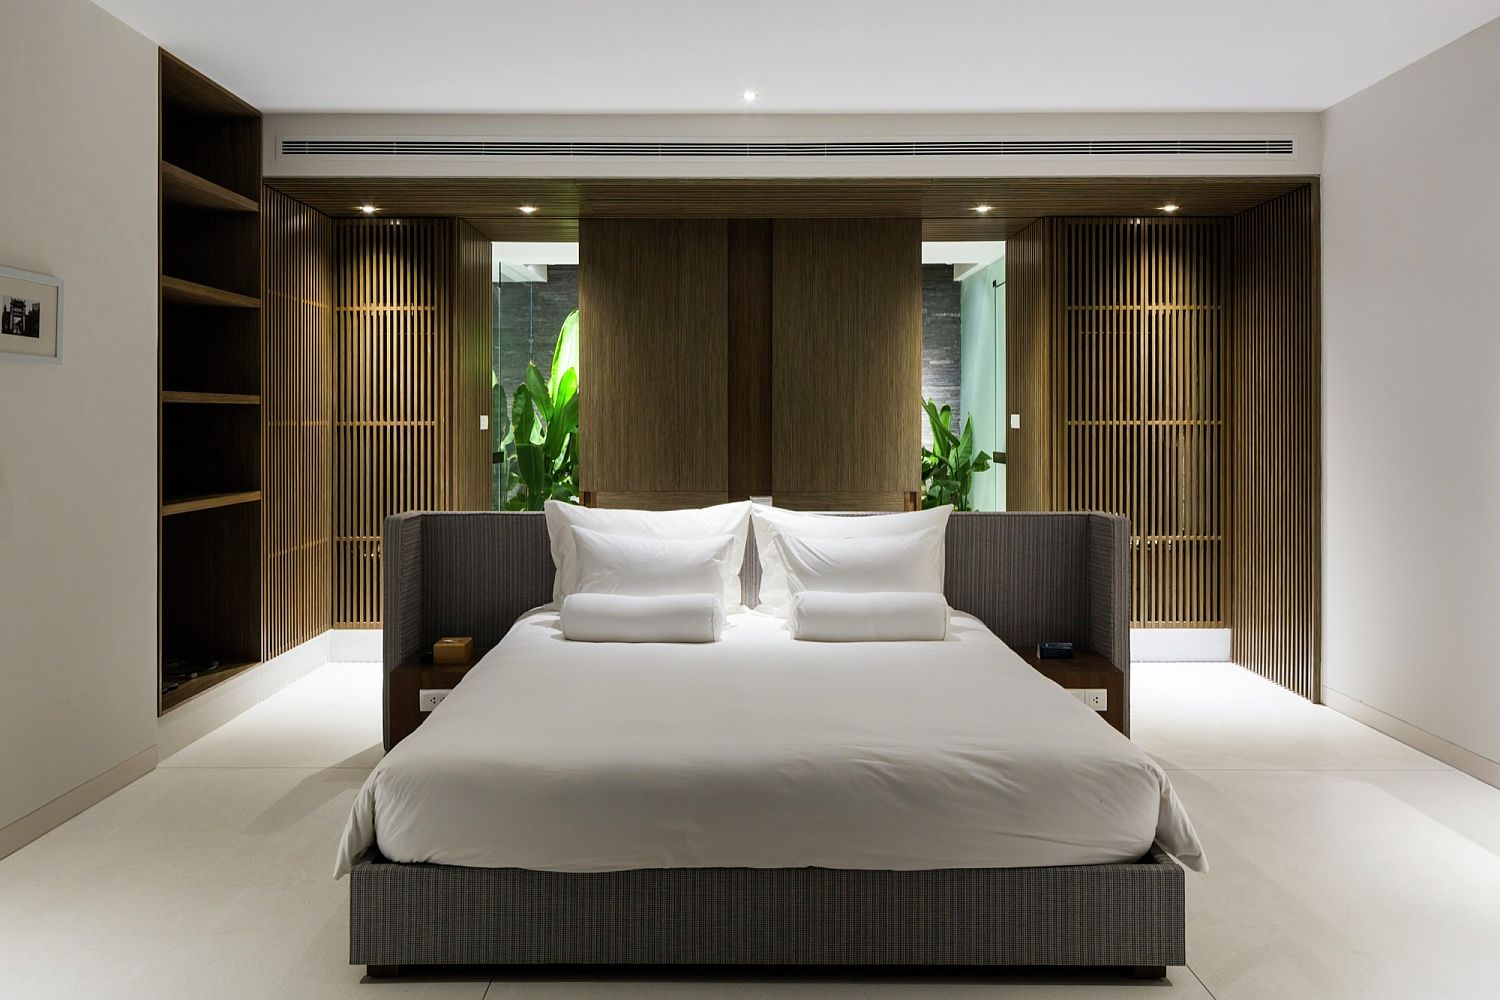 Natural wooden finishes combined with white inside the bedrooms